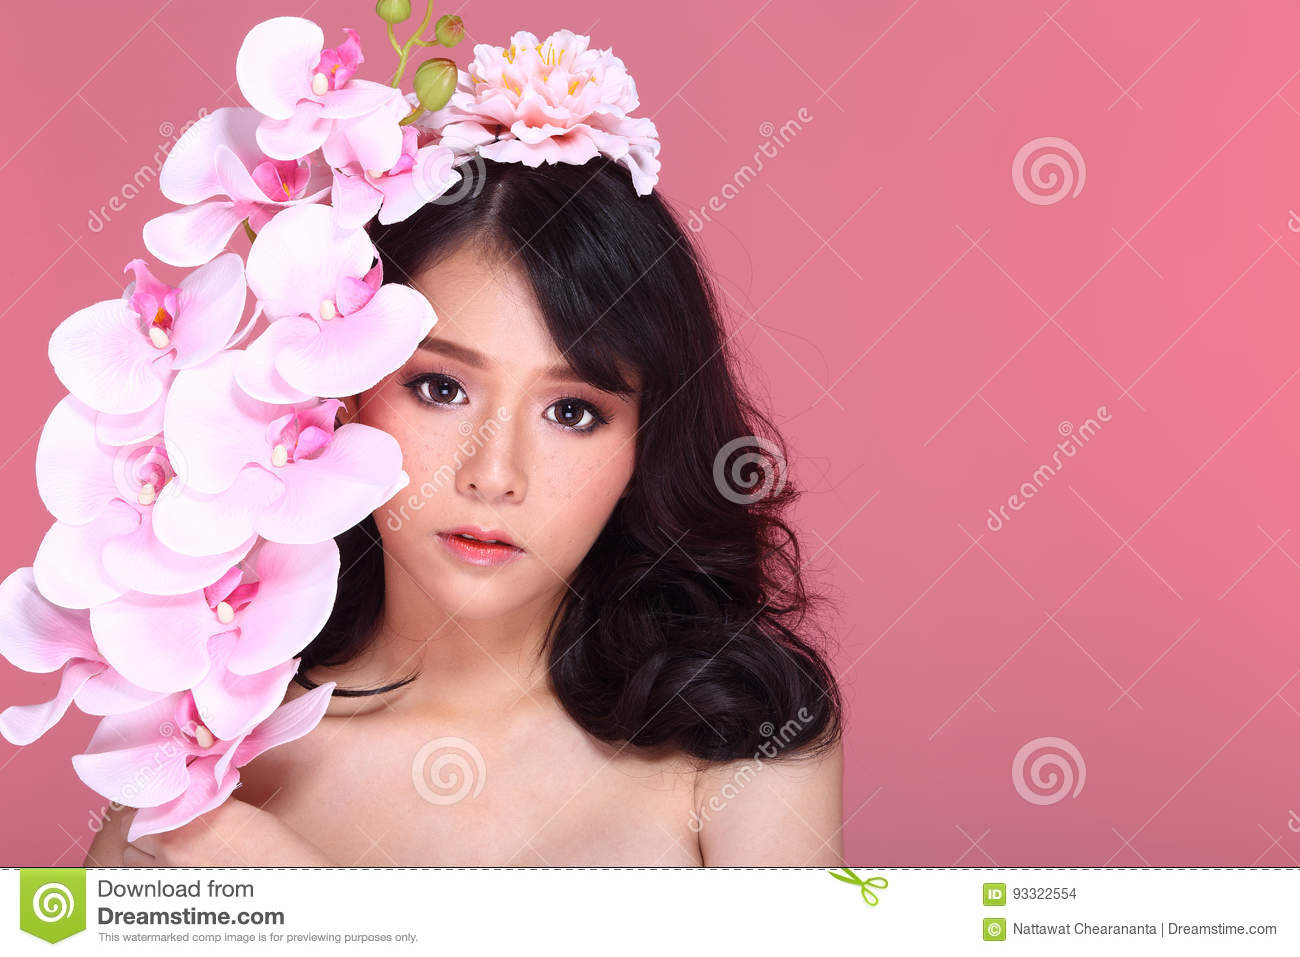 Beautiful Asian Woman black hair with flora crowd, holding bouquet artificial rose over chest